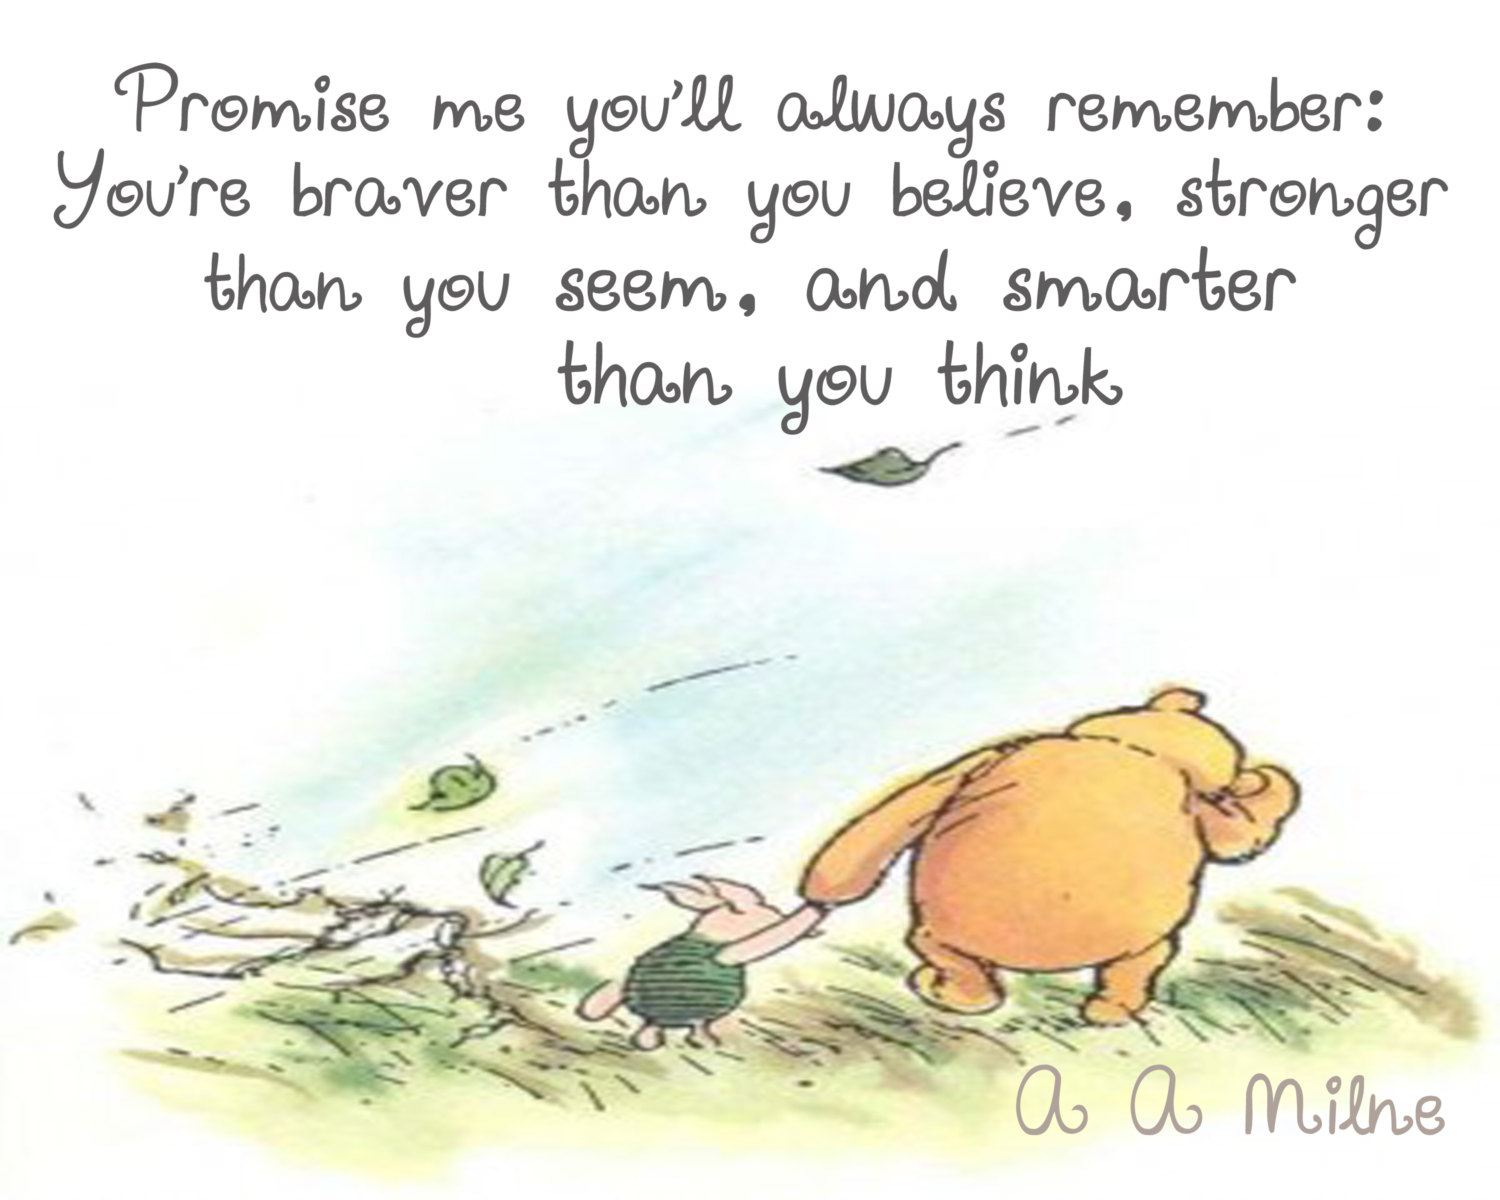 Winnie The Pooh Quotes About Friendship Interesting Winnie The Pooh Friendship Quotes Tumblr Crispingwinnie The